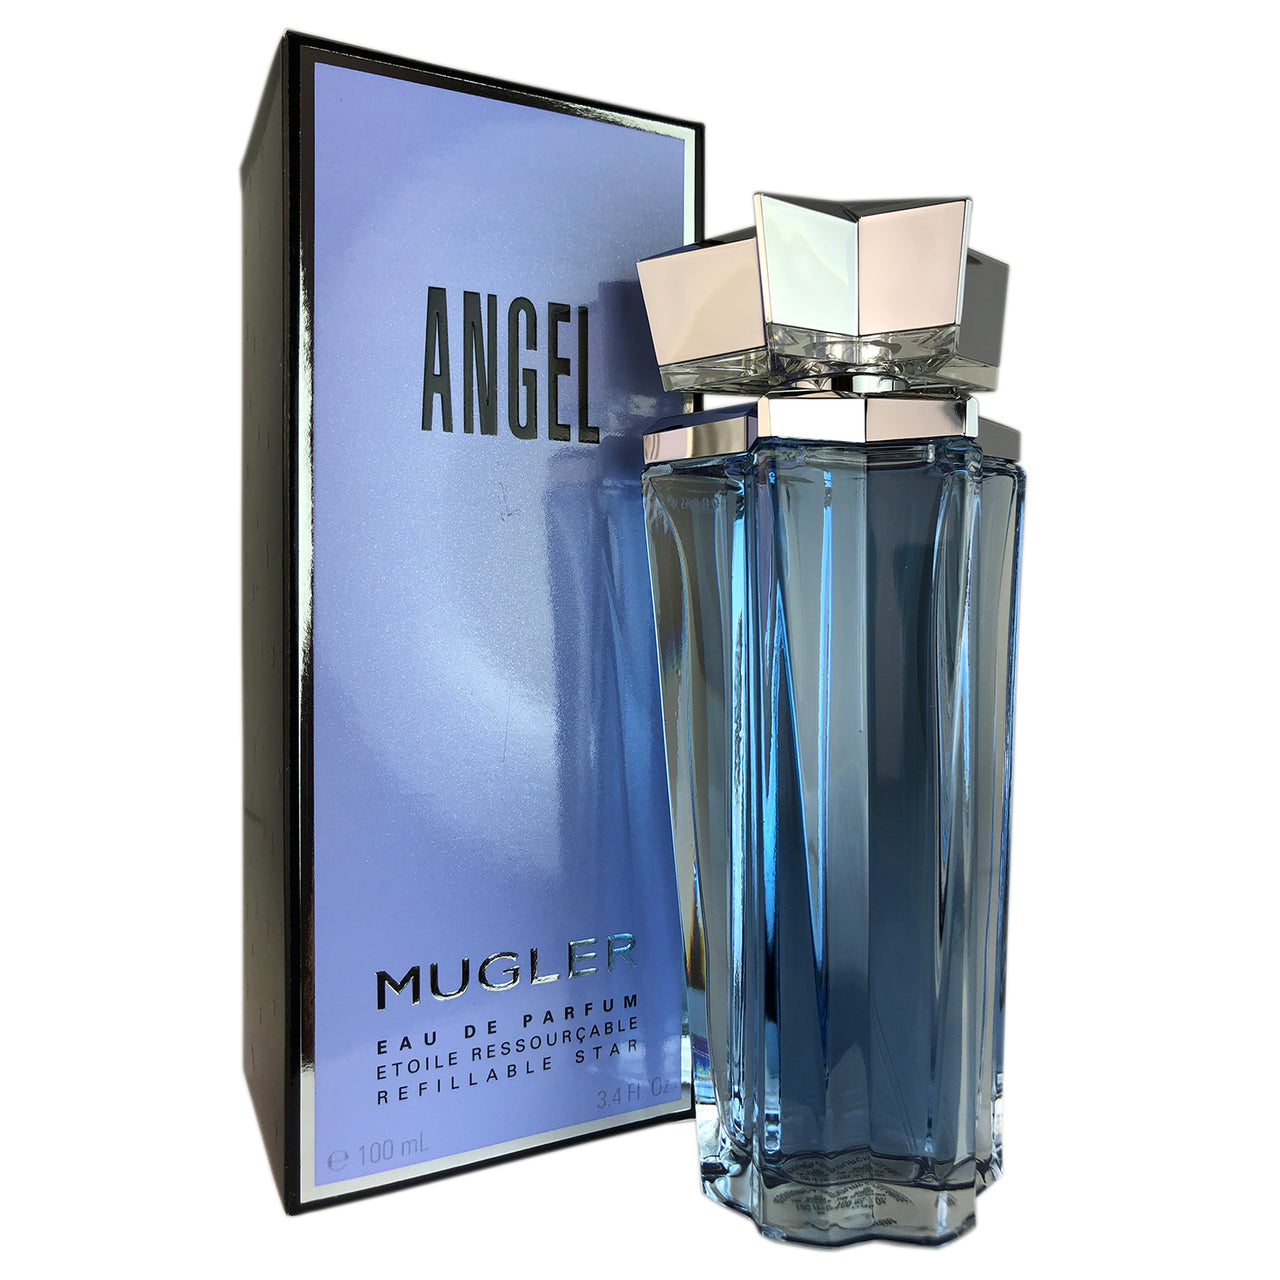 Angel for Women by Thierry Mugler 3.4 oz Eau de Parfum Refillable Spray